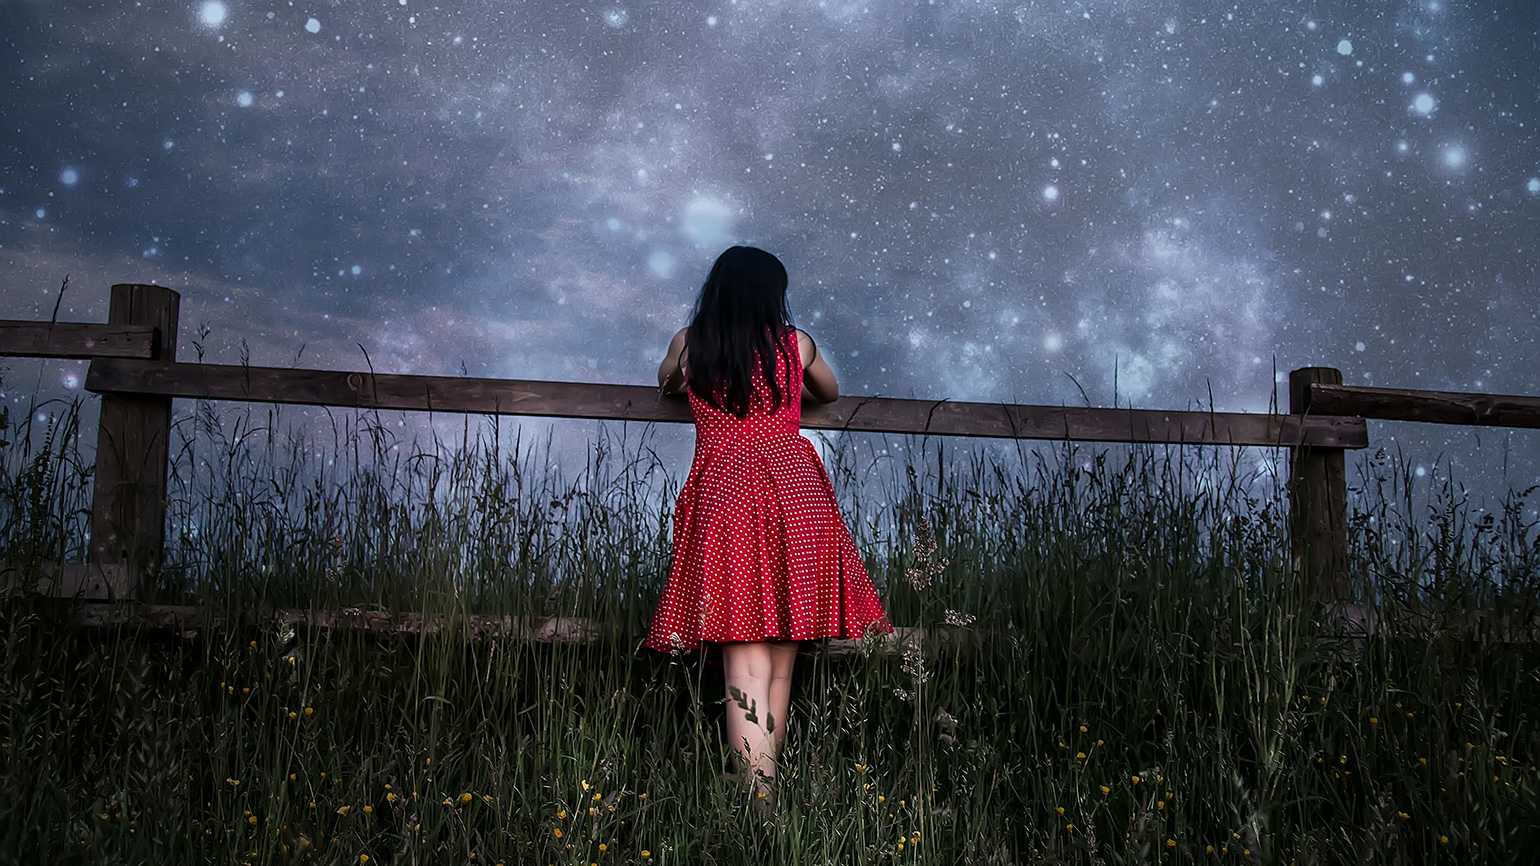 A girl gazes up at a starlit sky